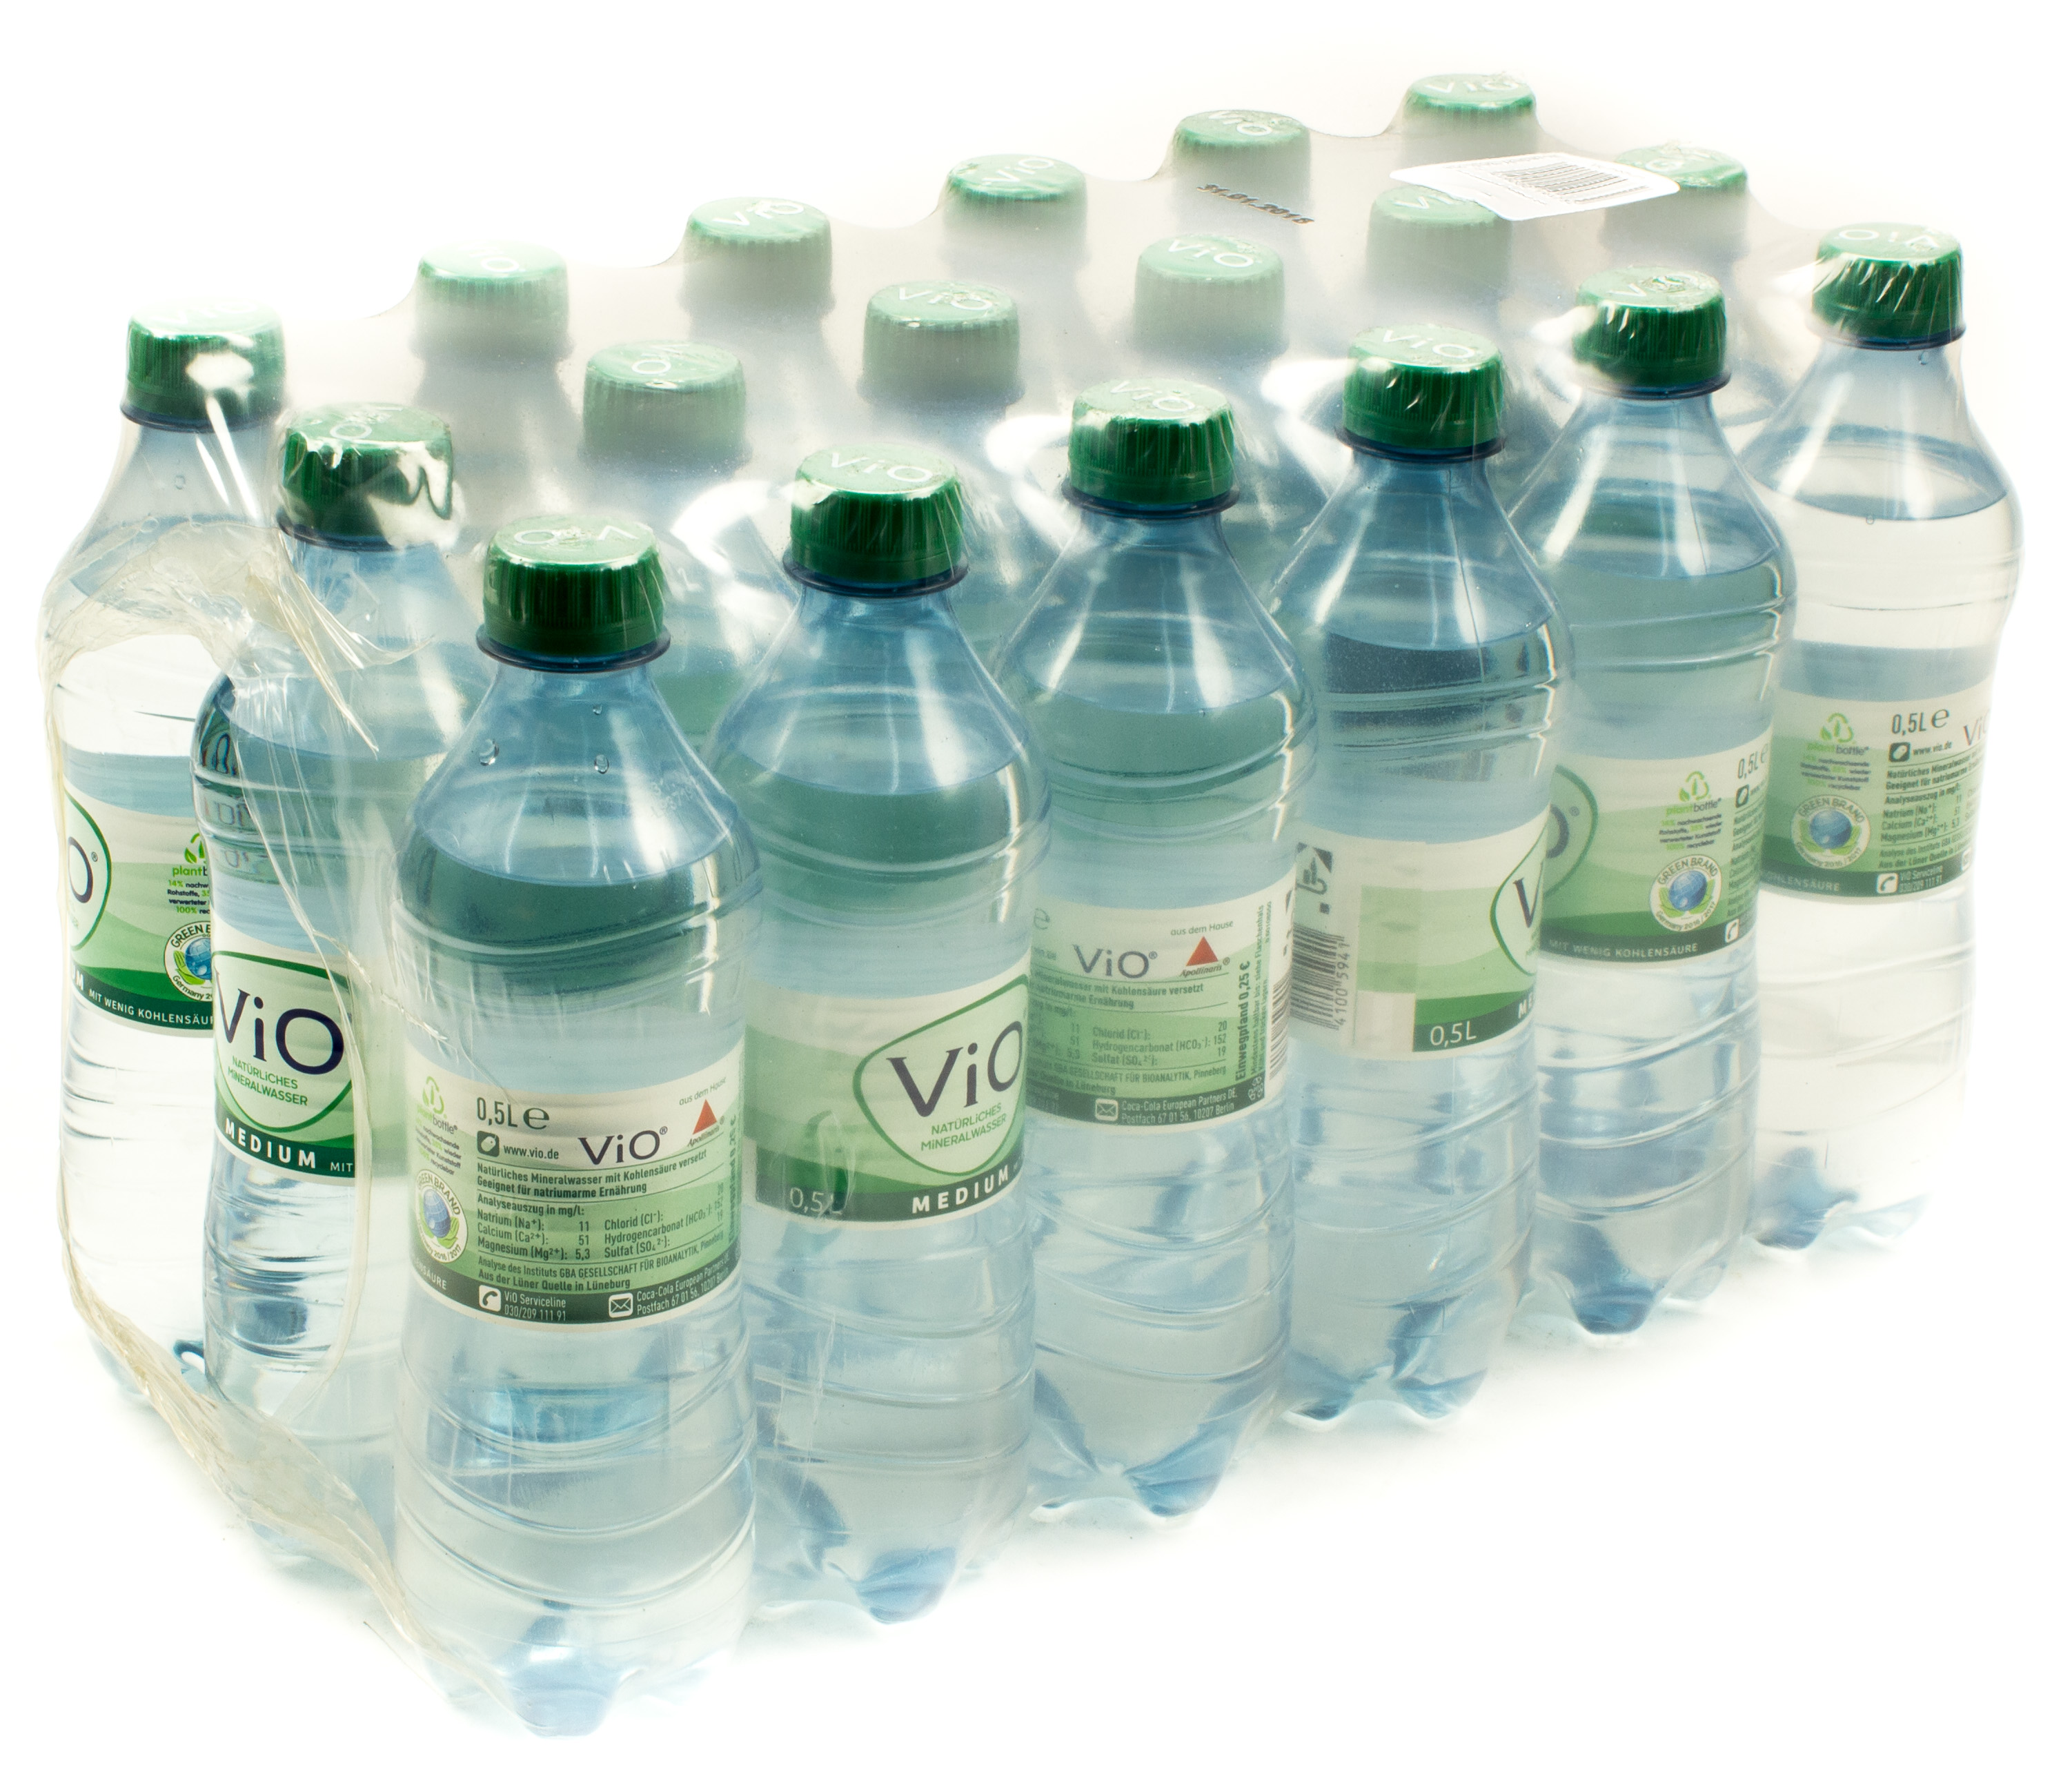 ViO Mineralwasser Medium 18 x 0,5 l PET Einweg